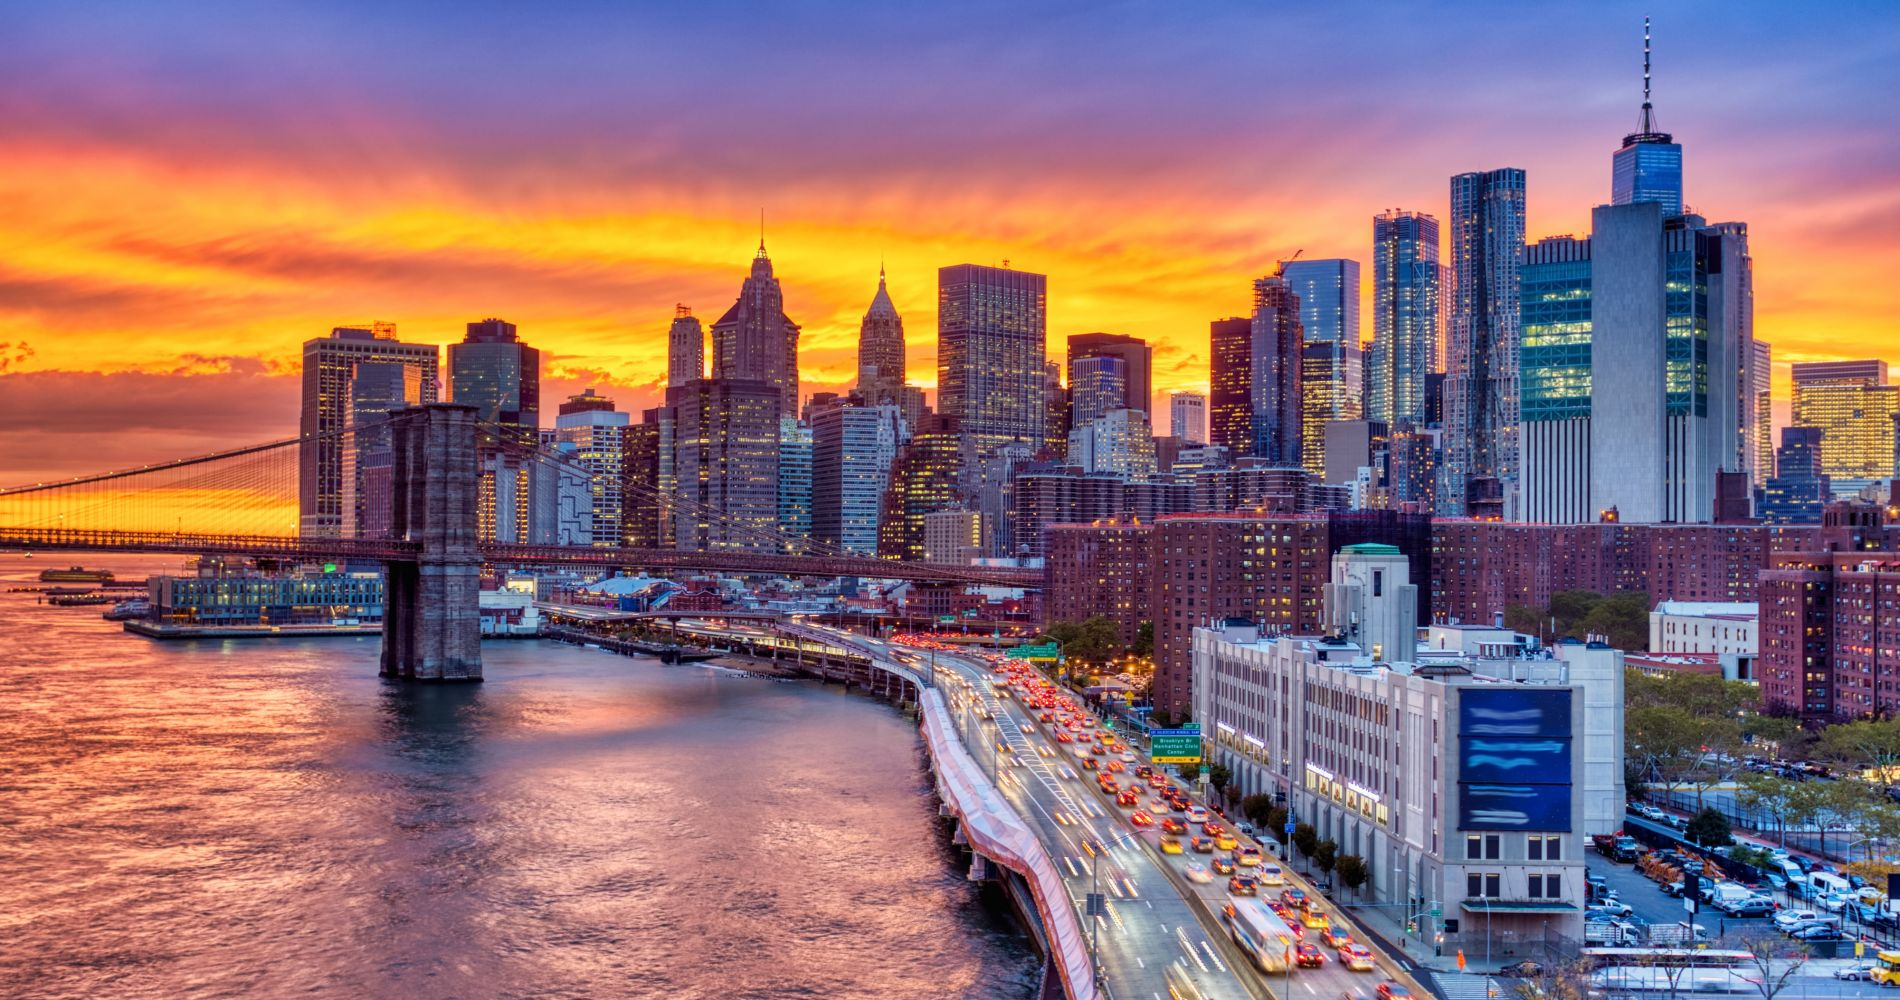 Madame Tussauds and other main attractions of New York